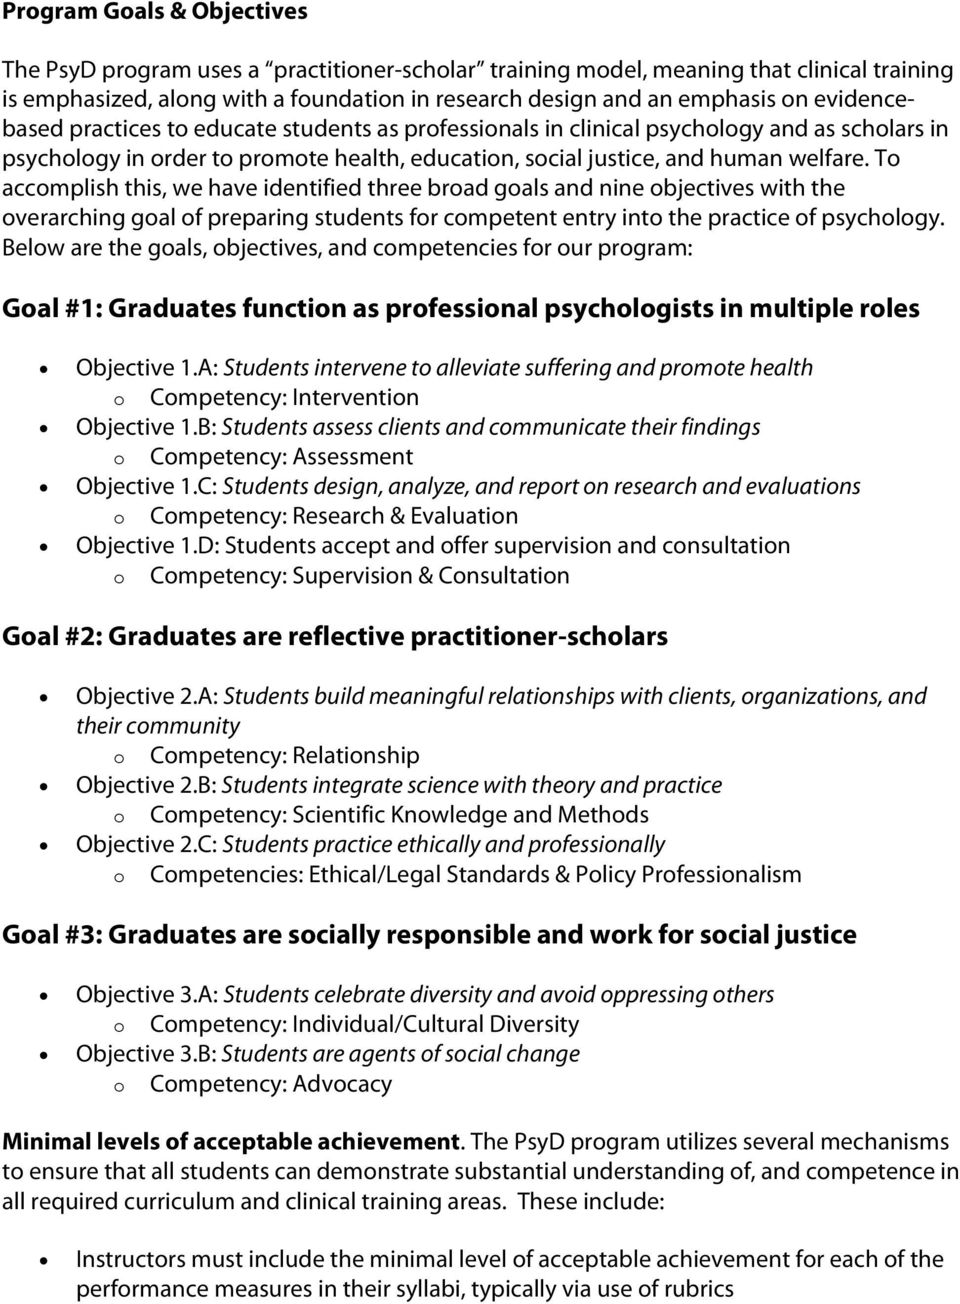 To accomplish this, we have identified three broad goals and nine objectives with the overarching goal of preparing students for competent entry into the practice of psychology.